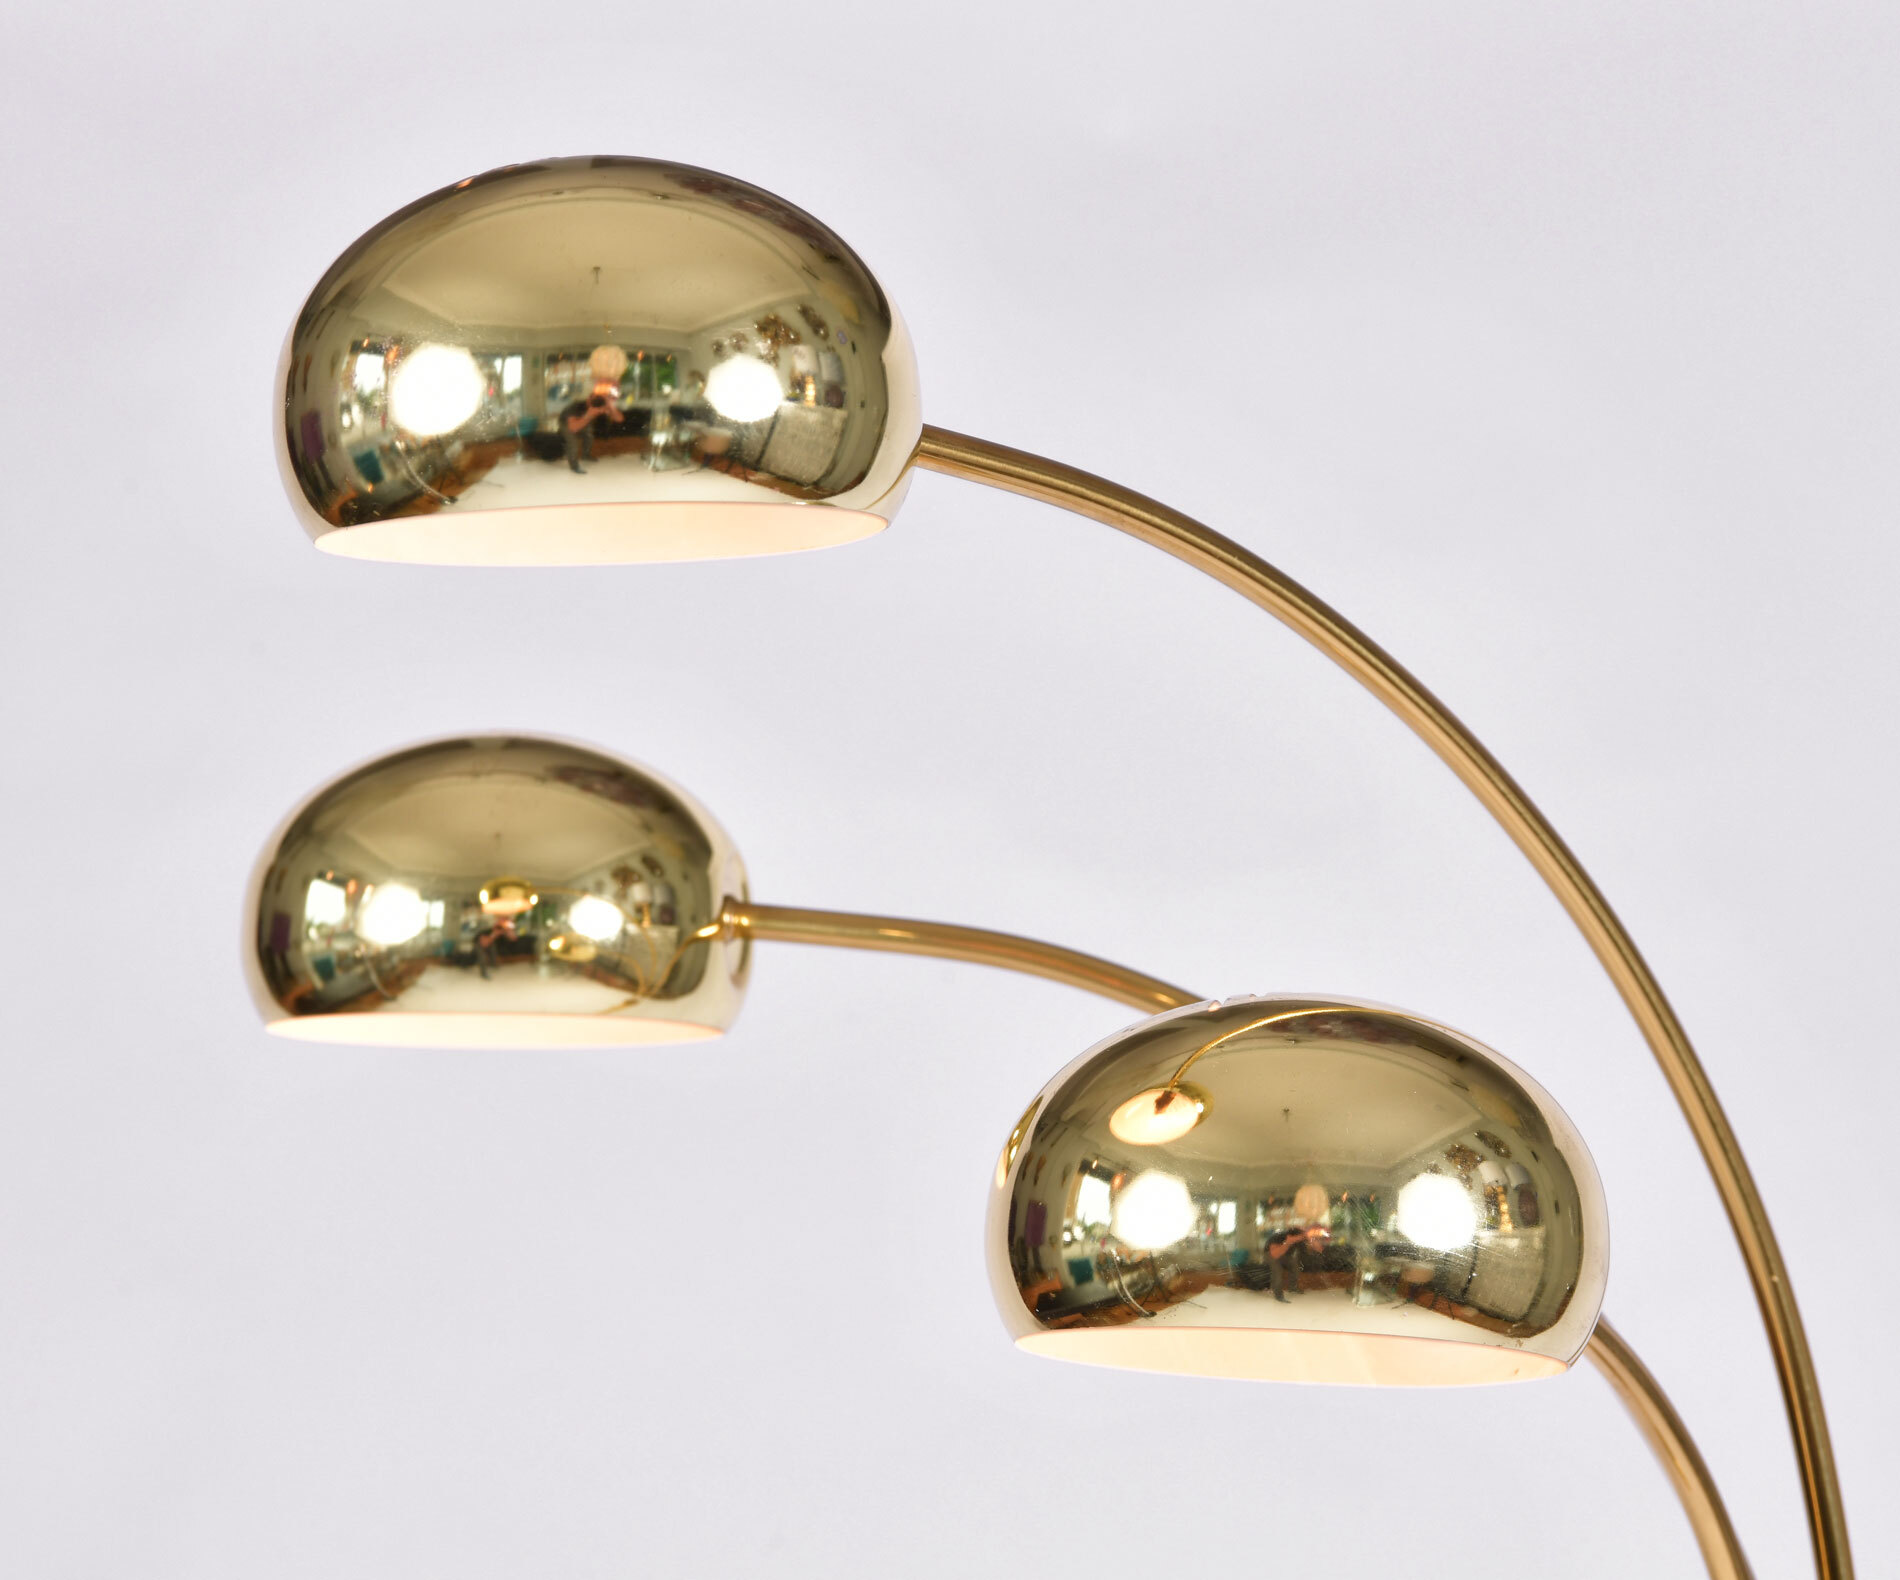 The image for Us 1970S Brass Floor Lamp 03